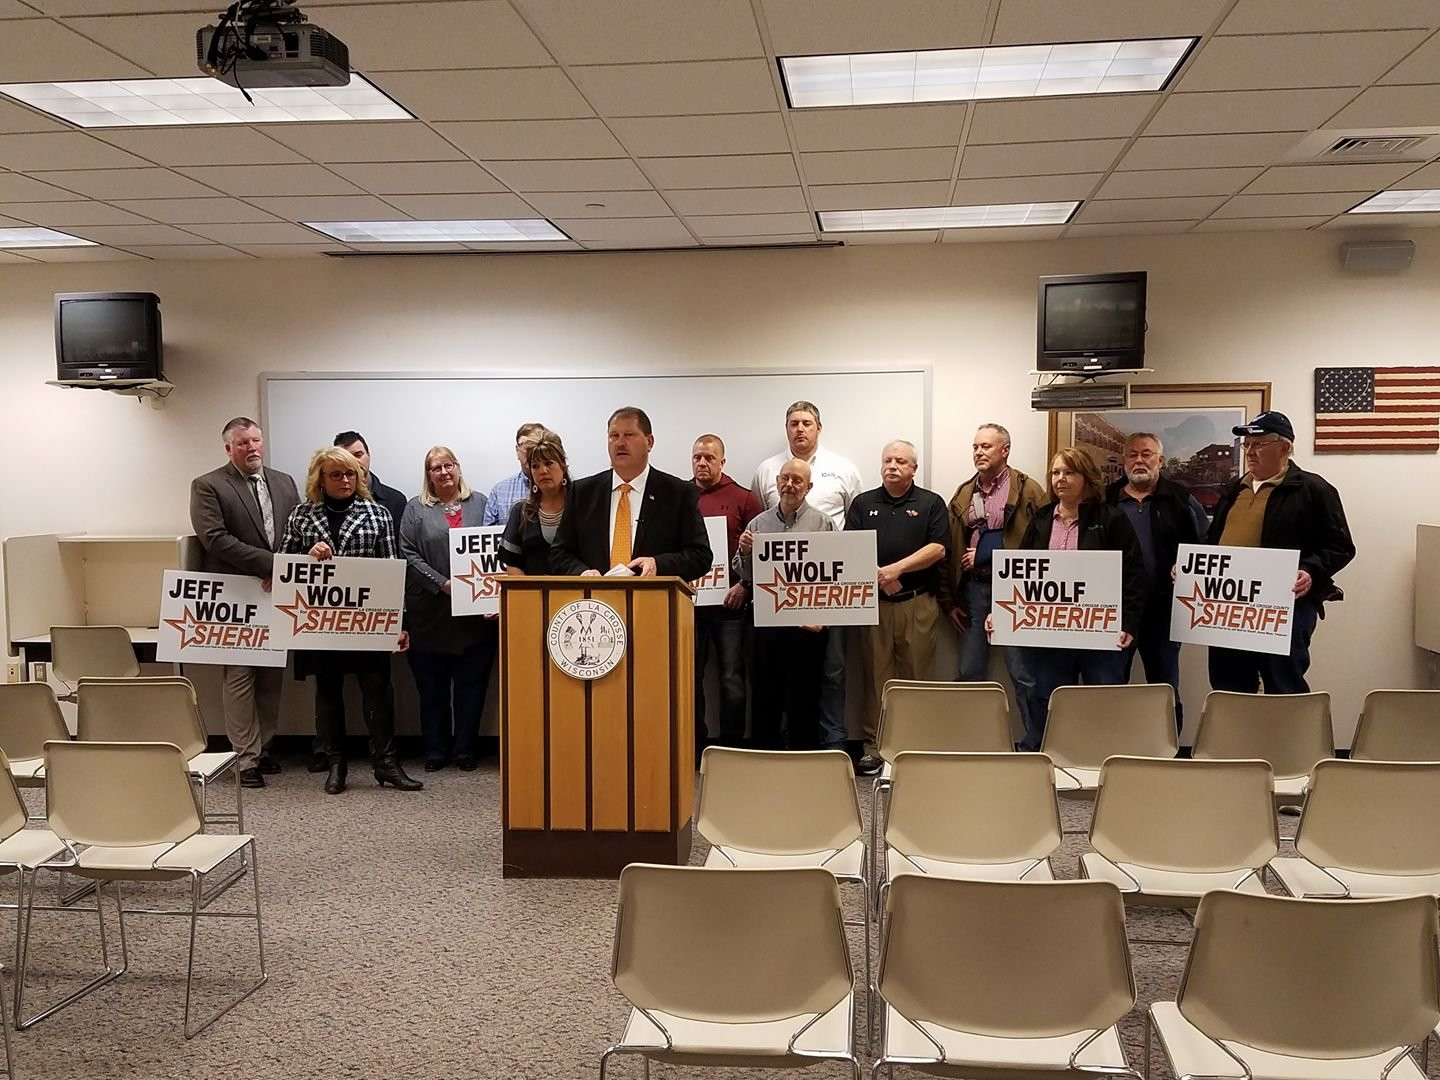 Jeff Wolf, in front of family and supporters, announced his candidacy for La Crosse County Sheriff.